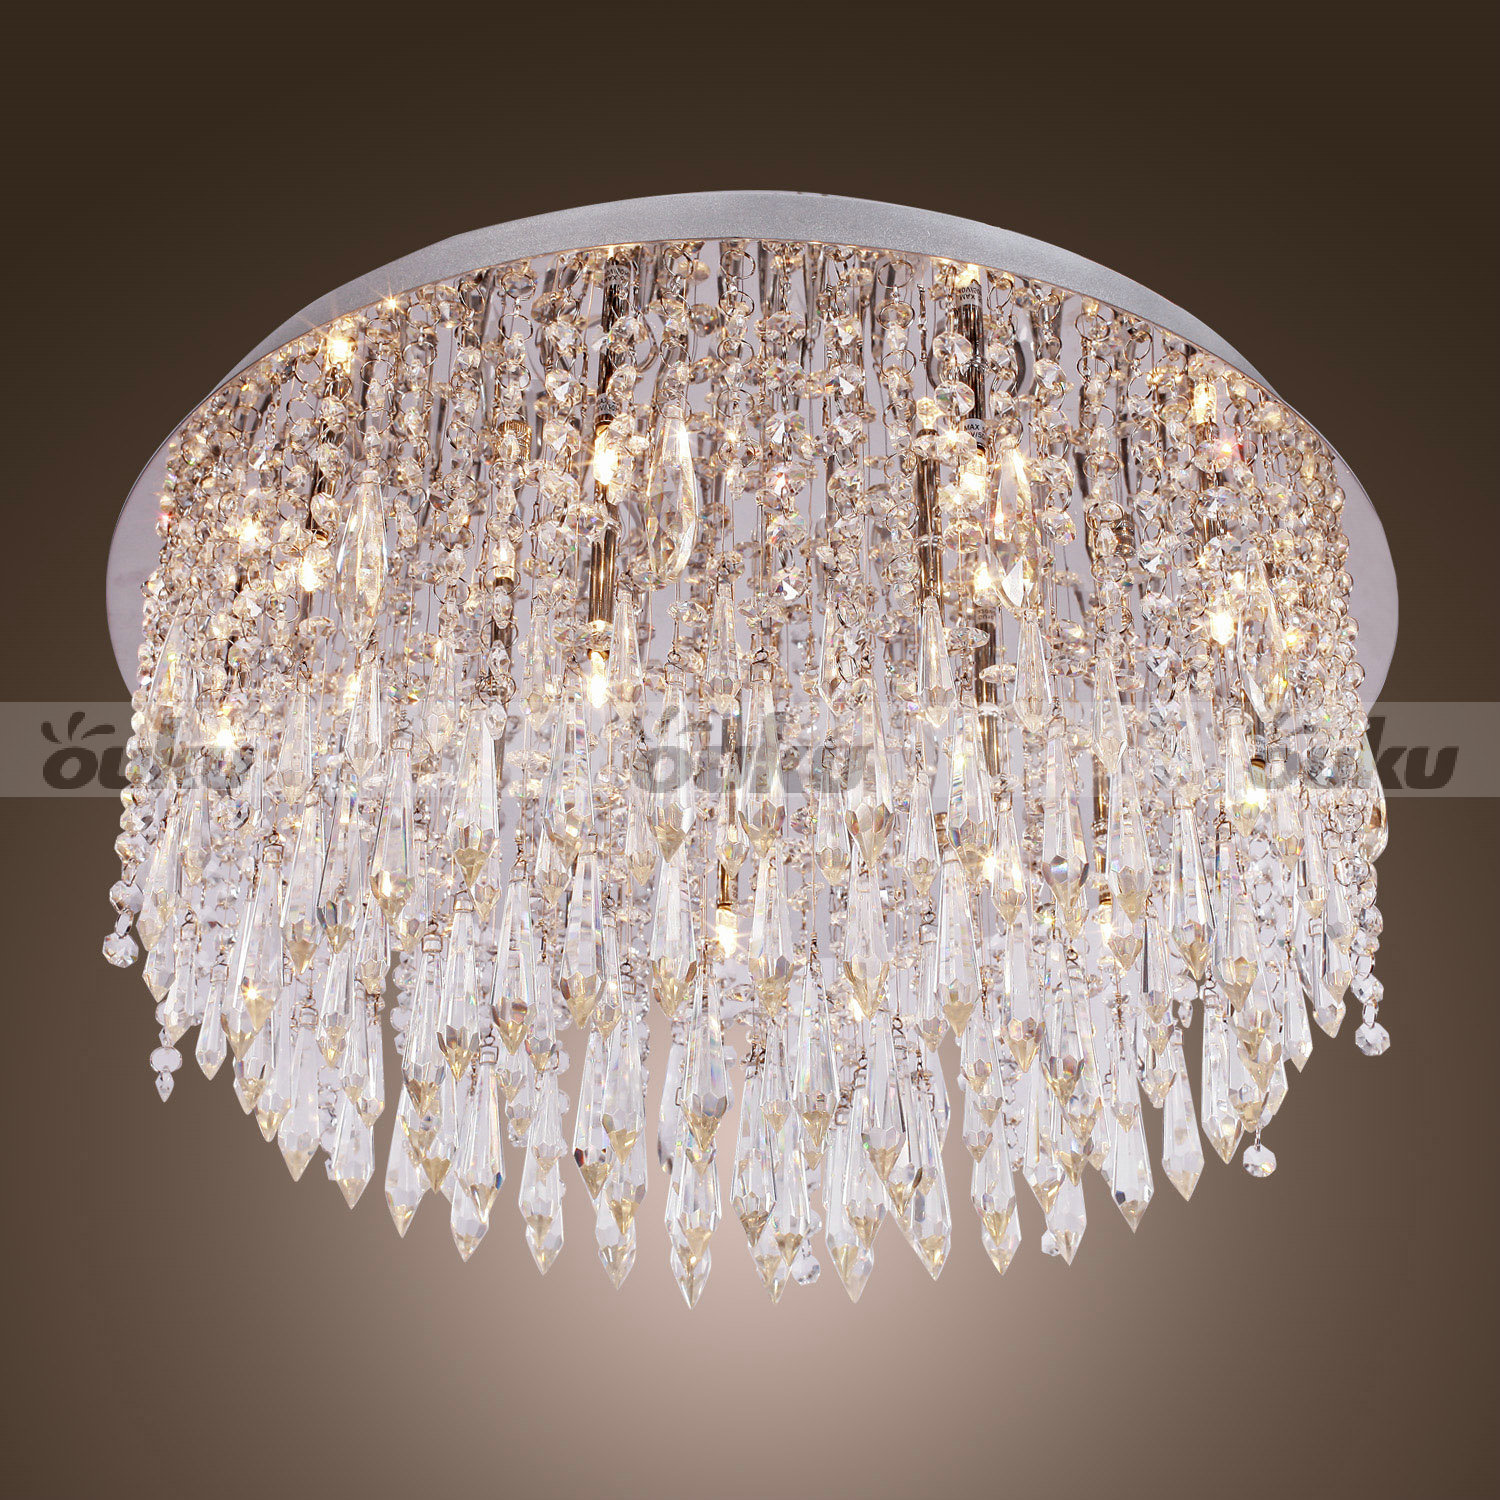 Amora Lighting Tiffany Style 3 Light Jeweled Design Large Floating 17 Inch Flush Mount Childrens